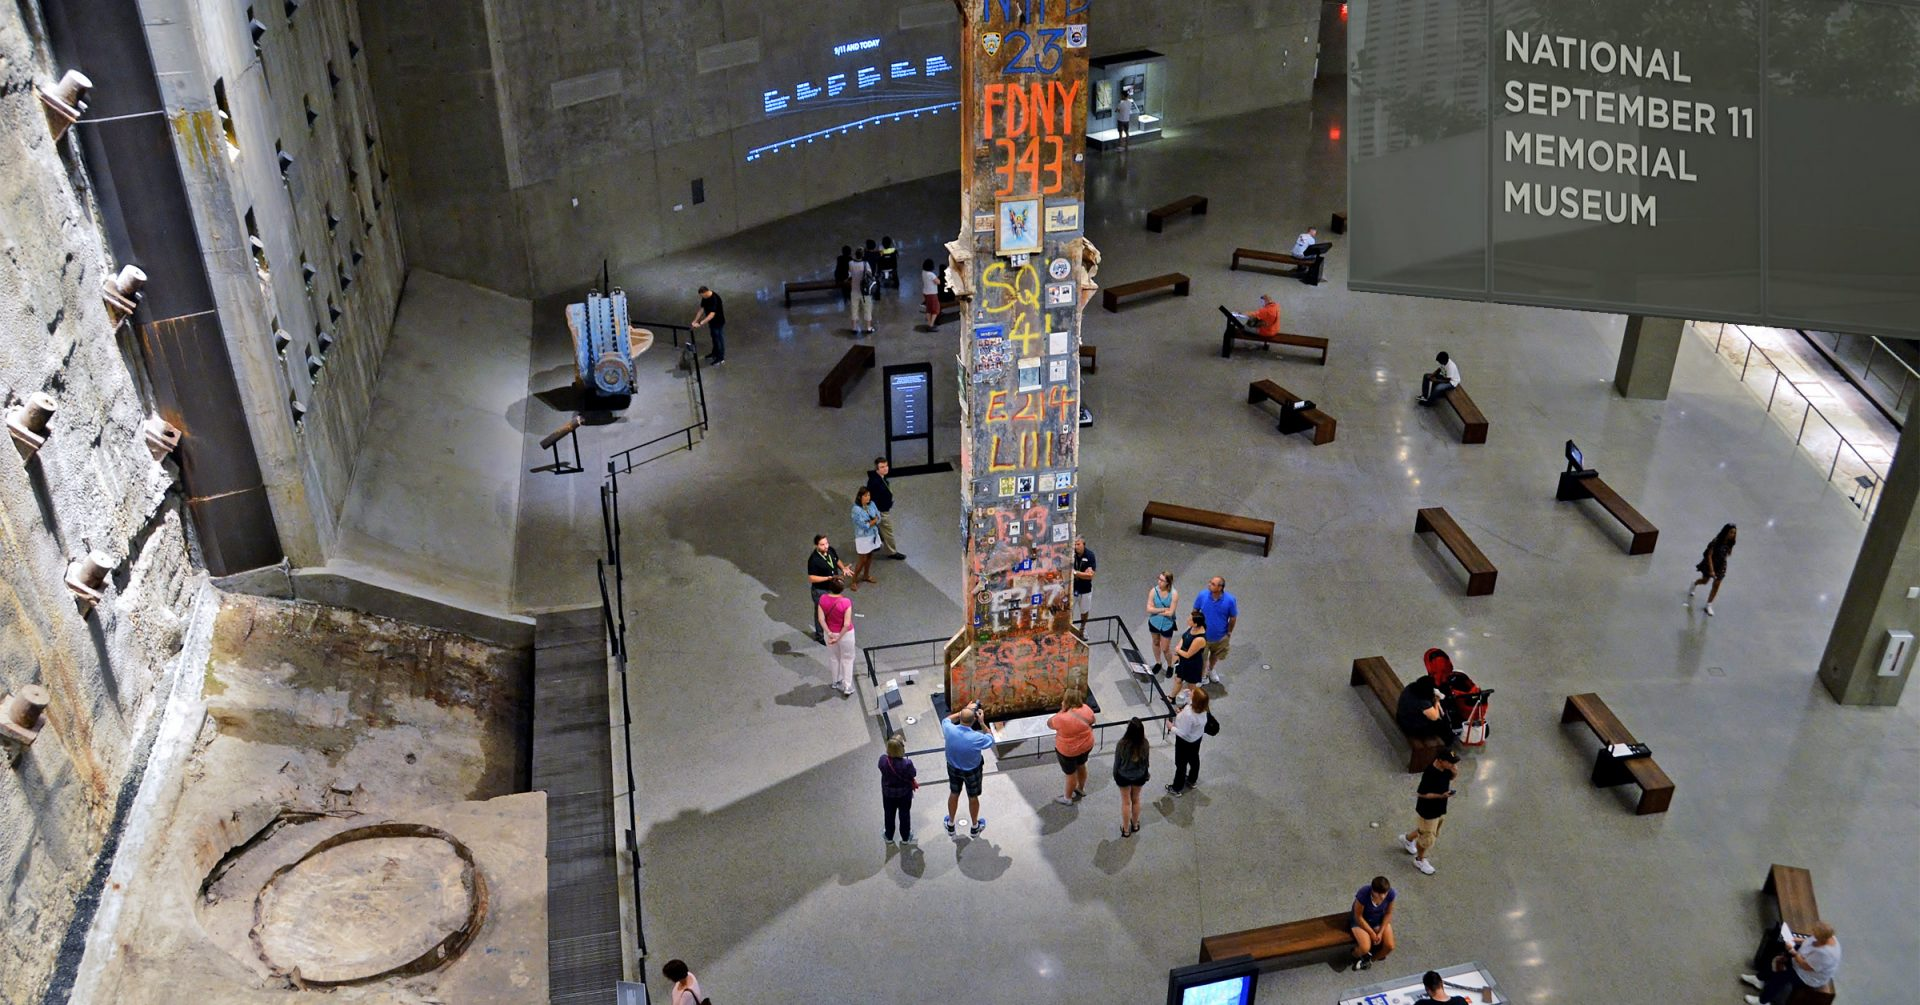 9/11 Memorial Museum - National September 11 Memorial Museum